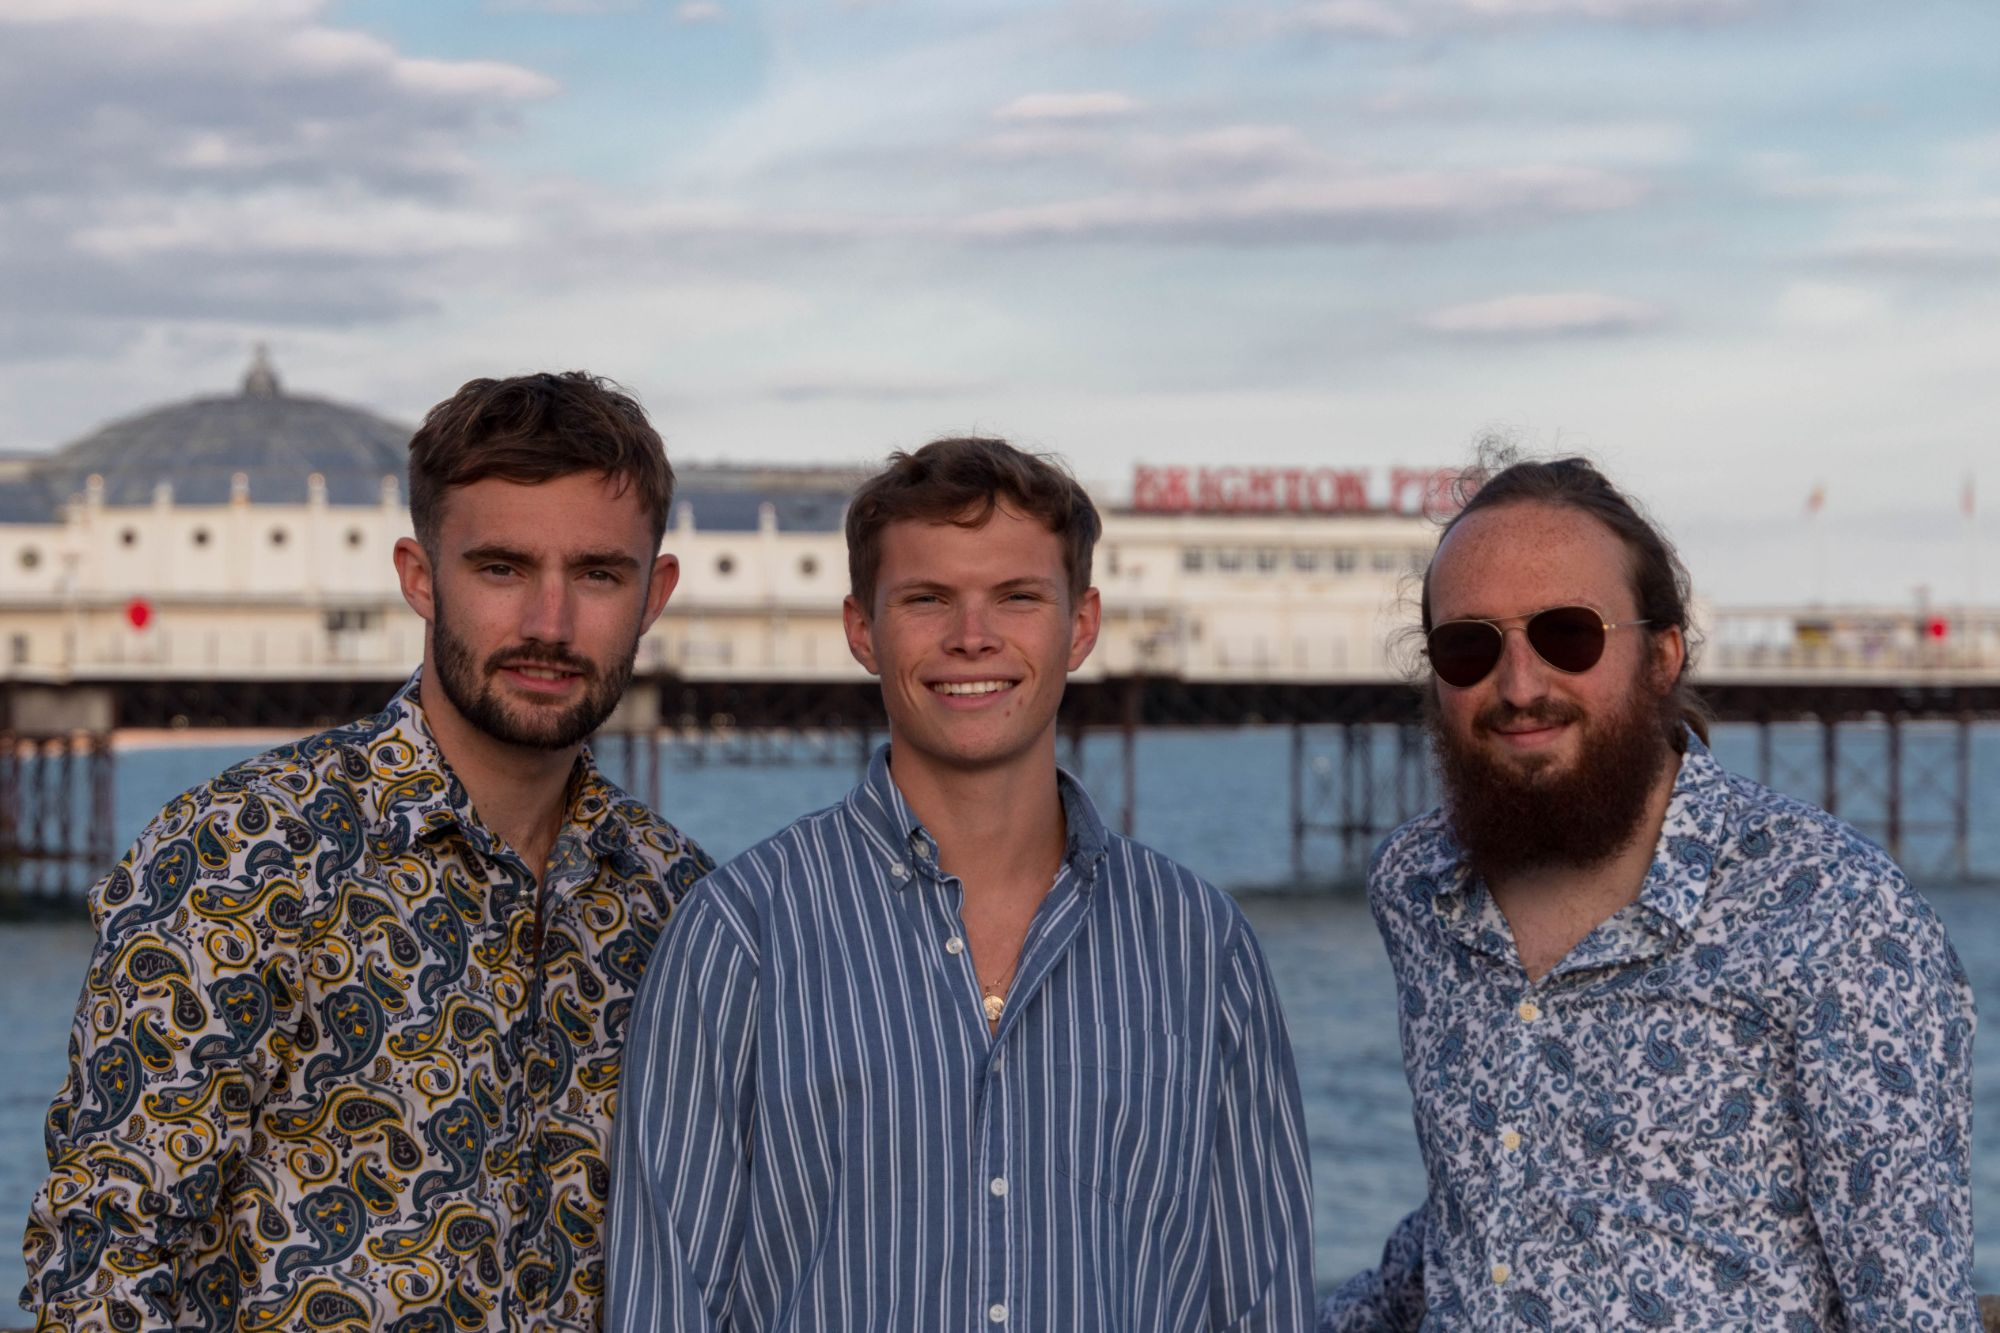 A picture of the three Ethicul founders on Brighton Seafront